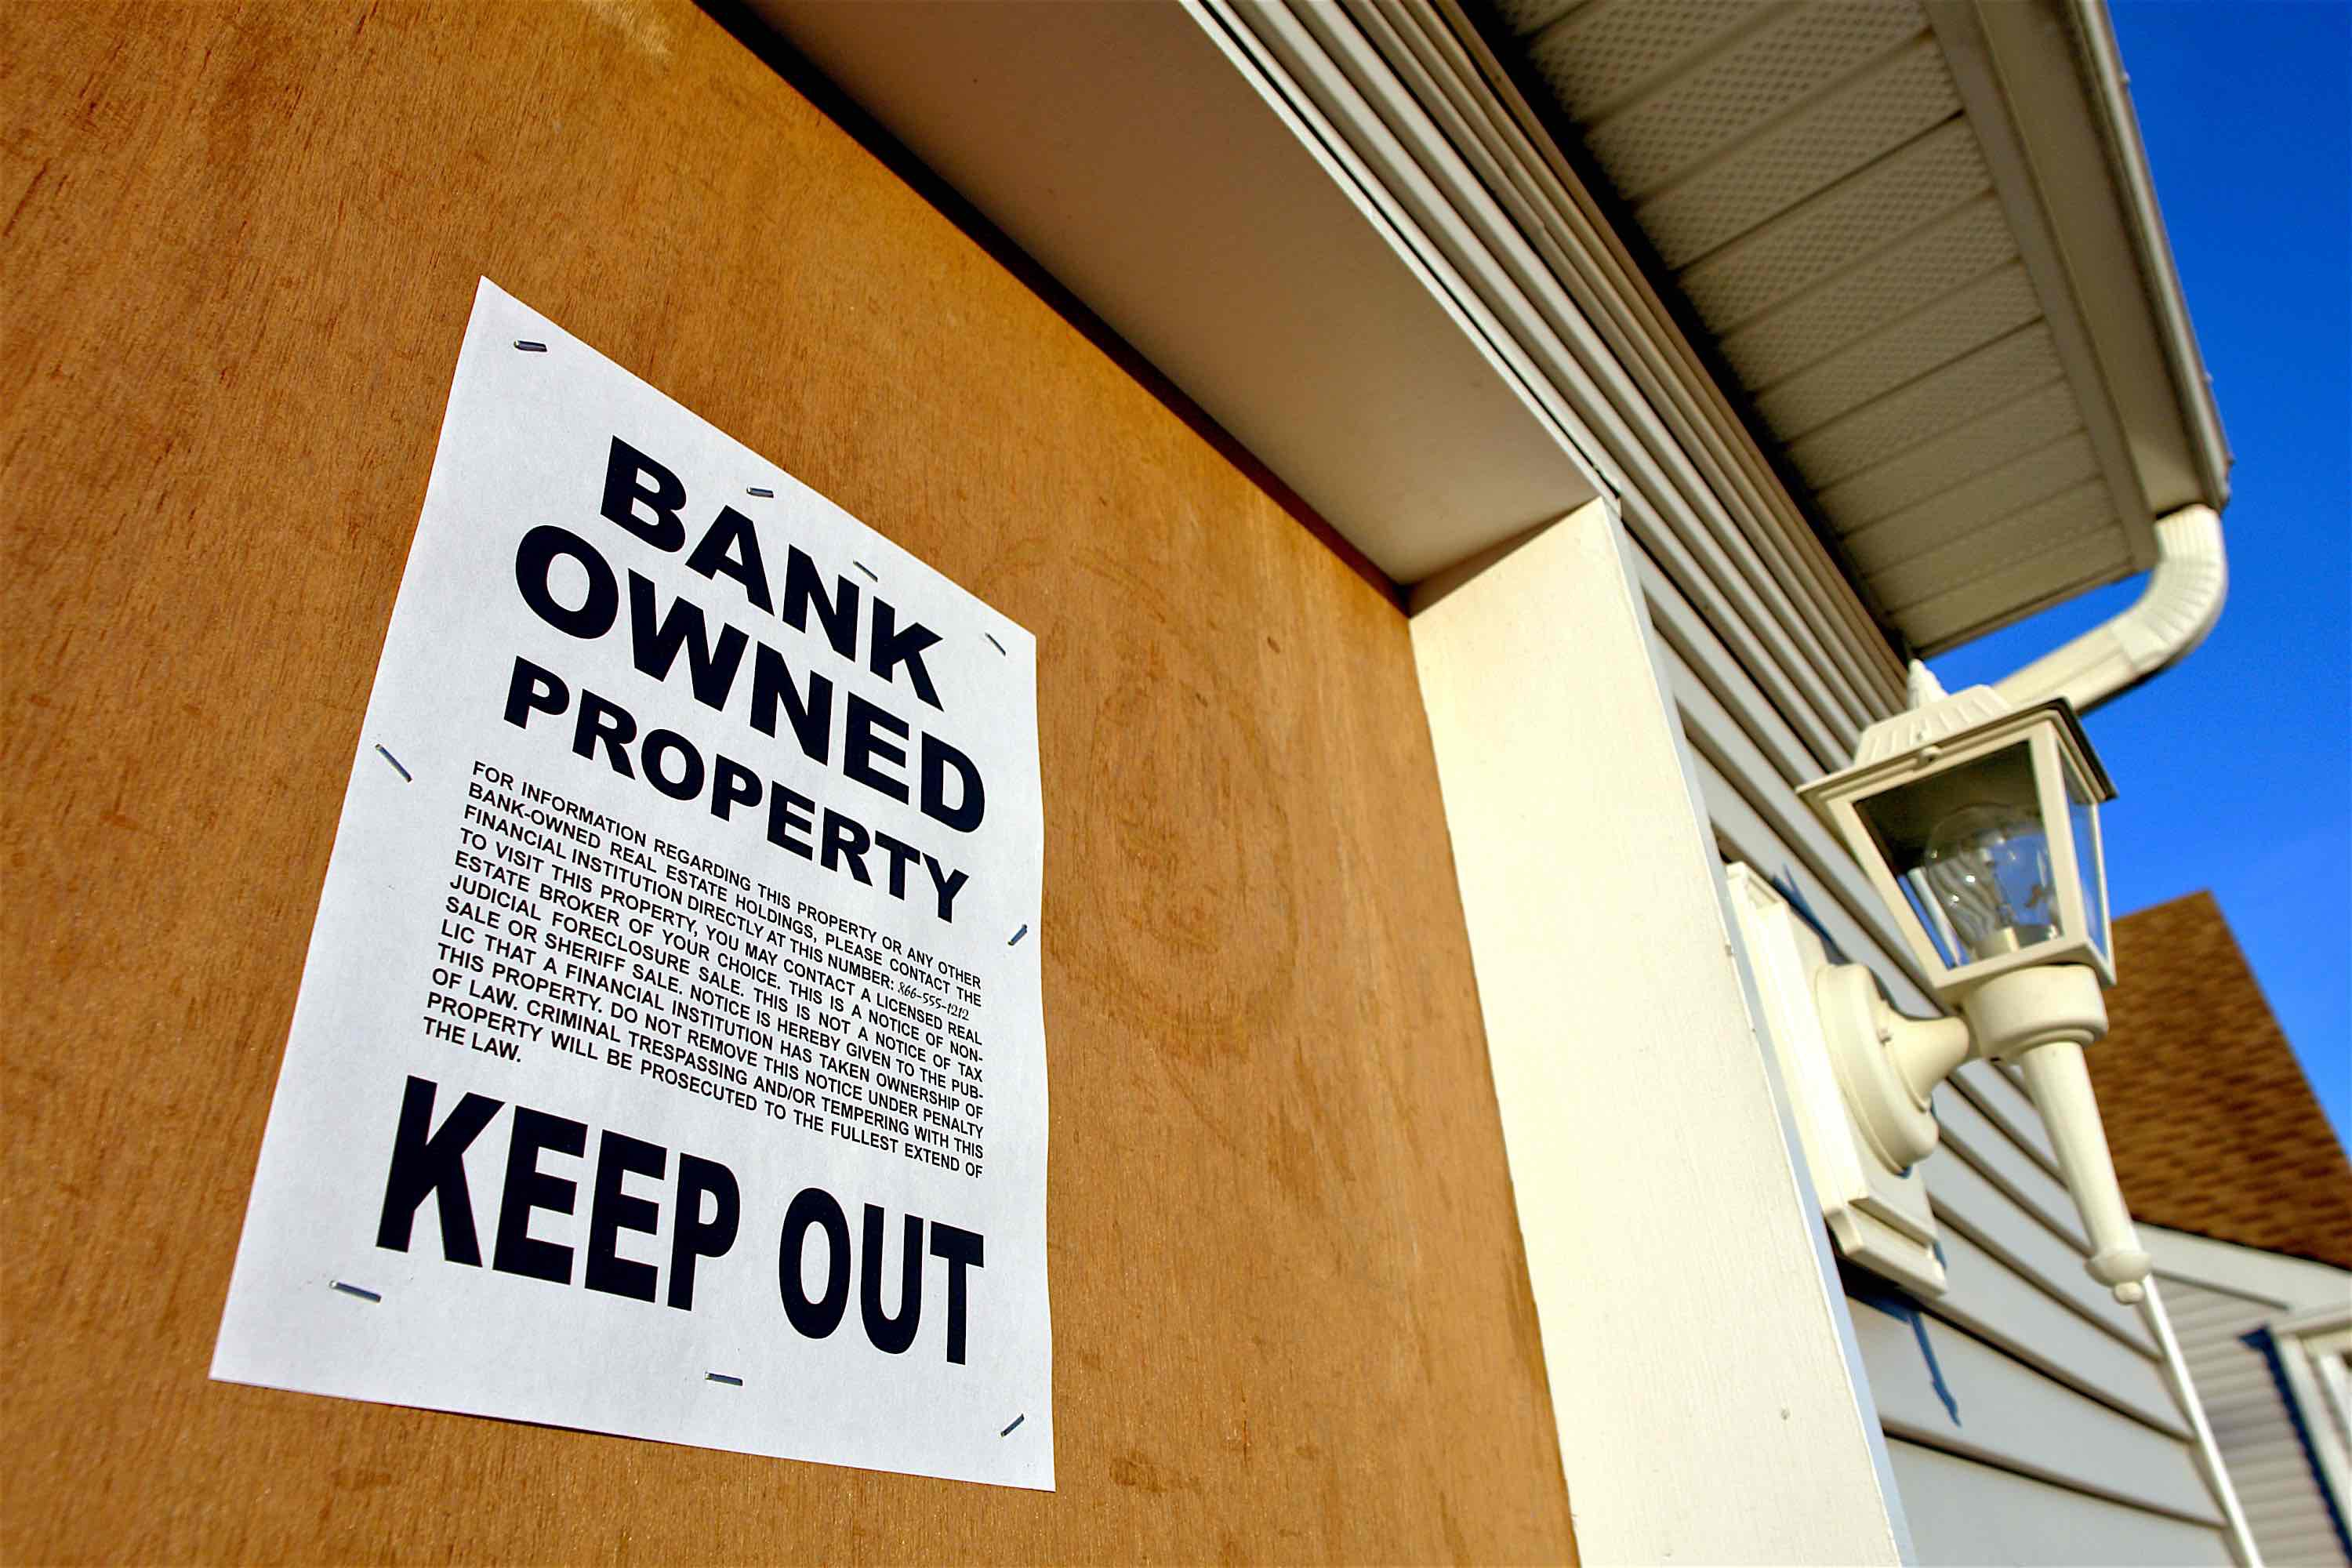 Bank Properties Foreclosed